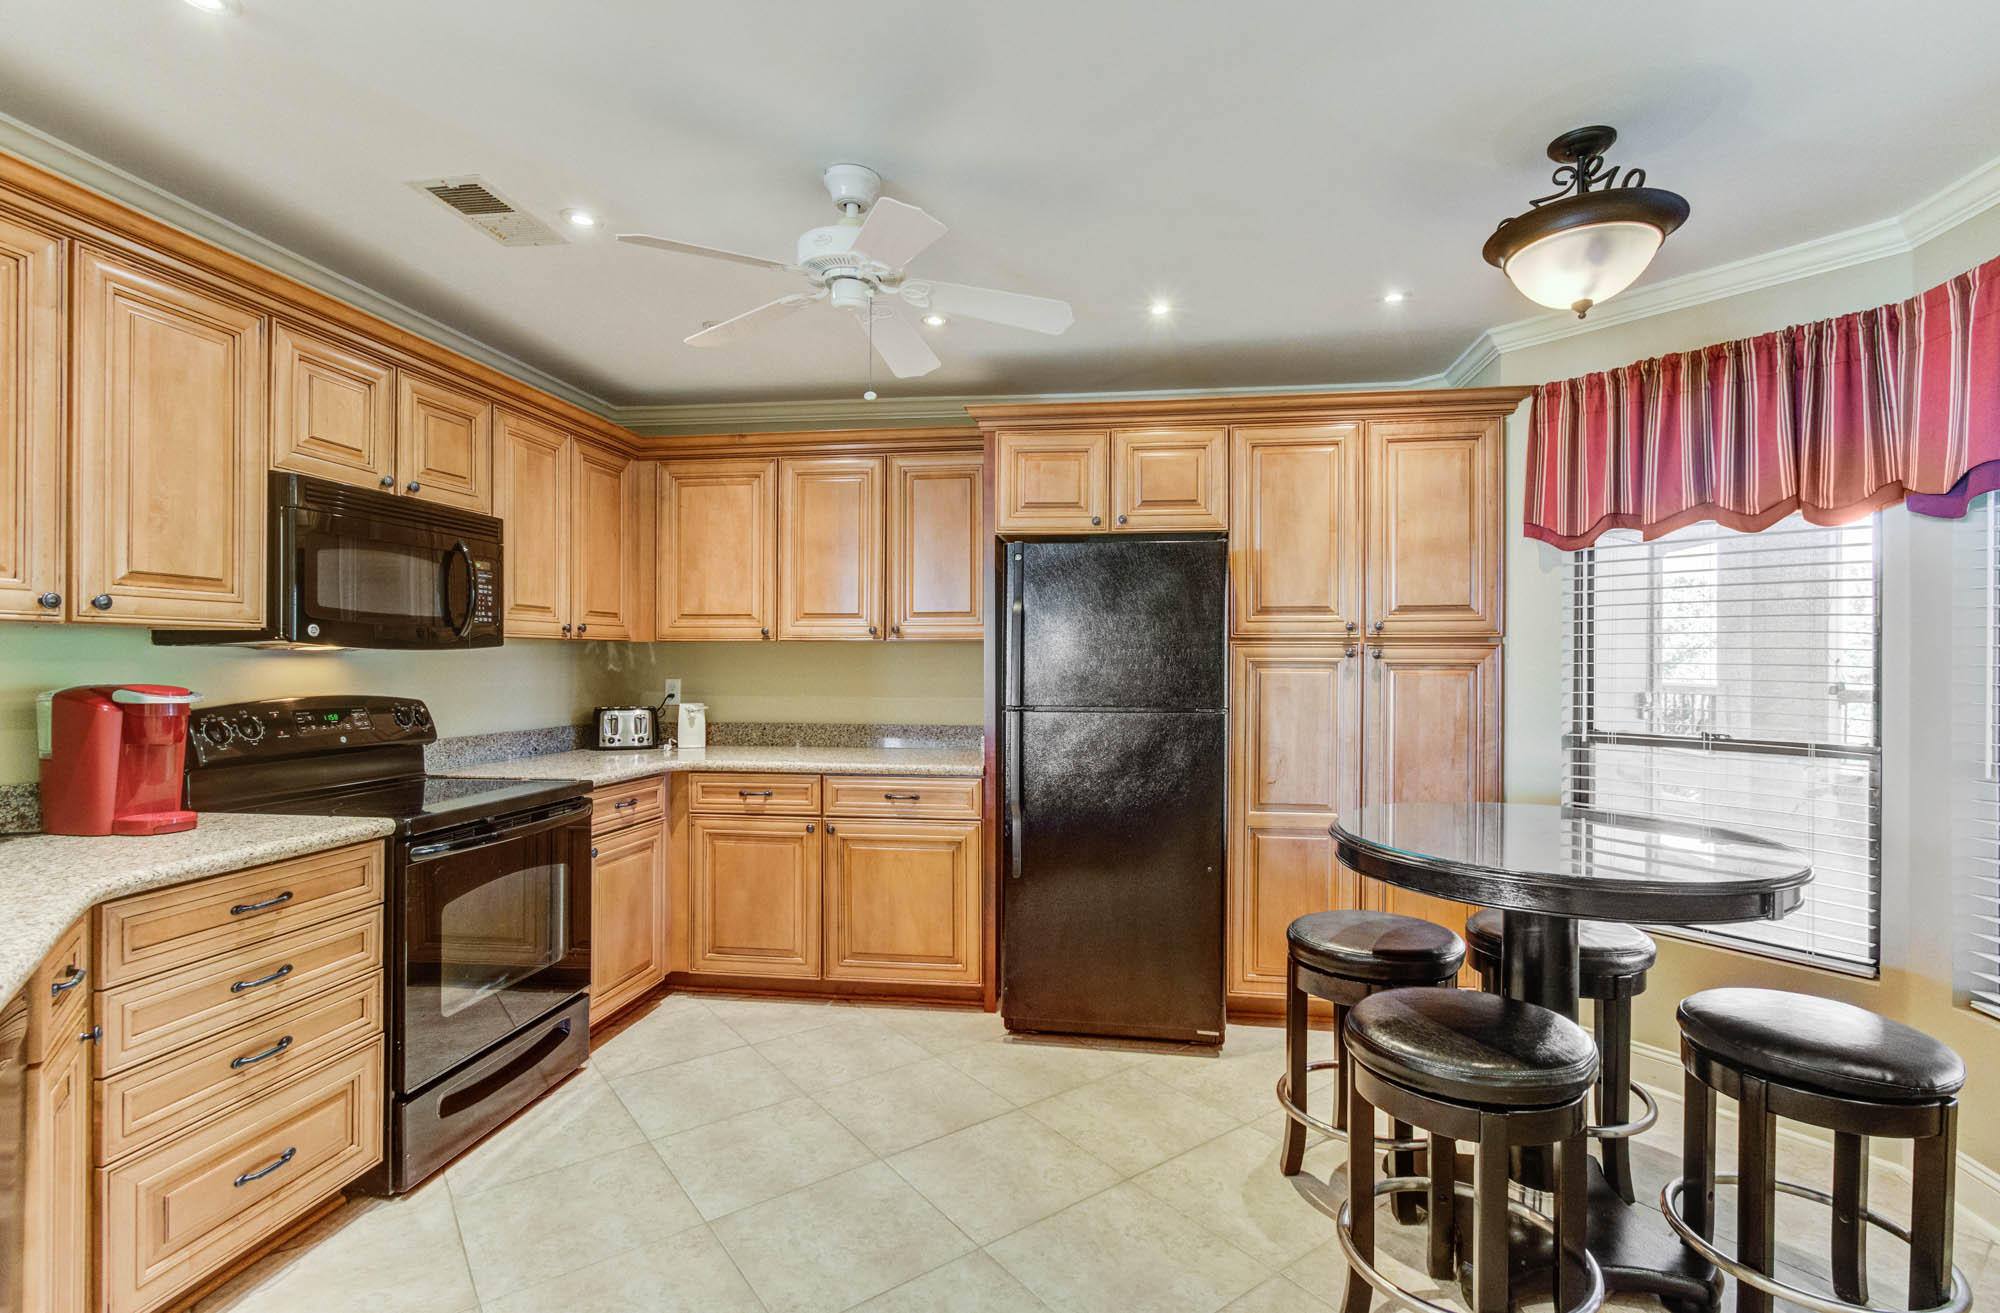 Wild Dunes Homes For Sale - 210 Summerhouse, Isle of Palms, SC - 20